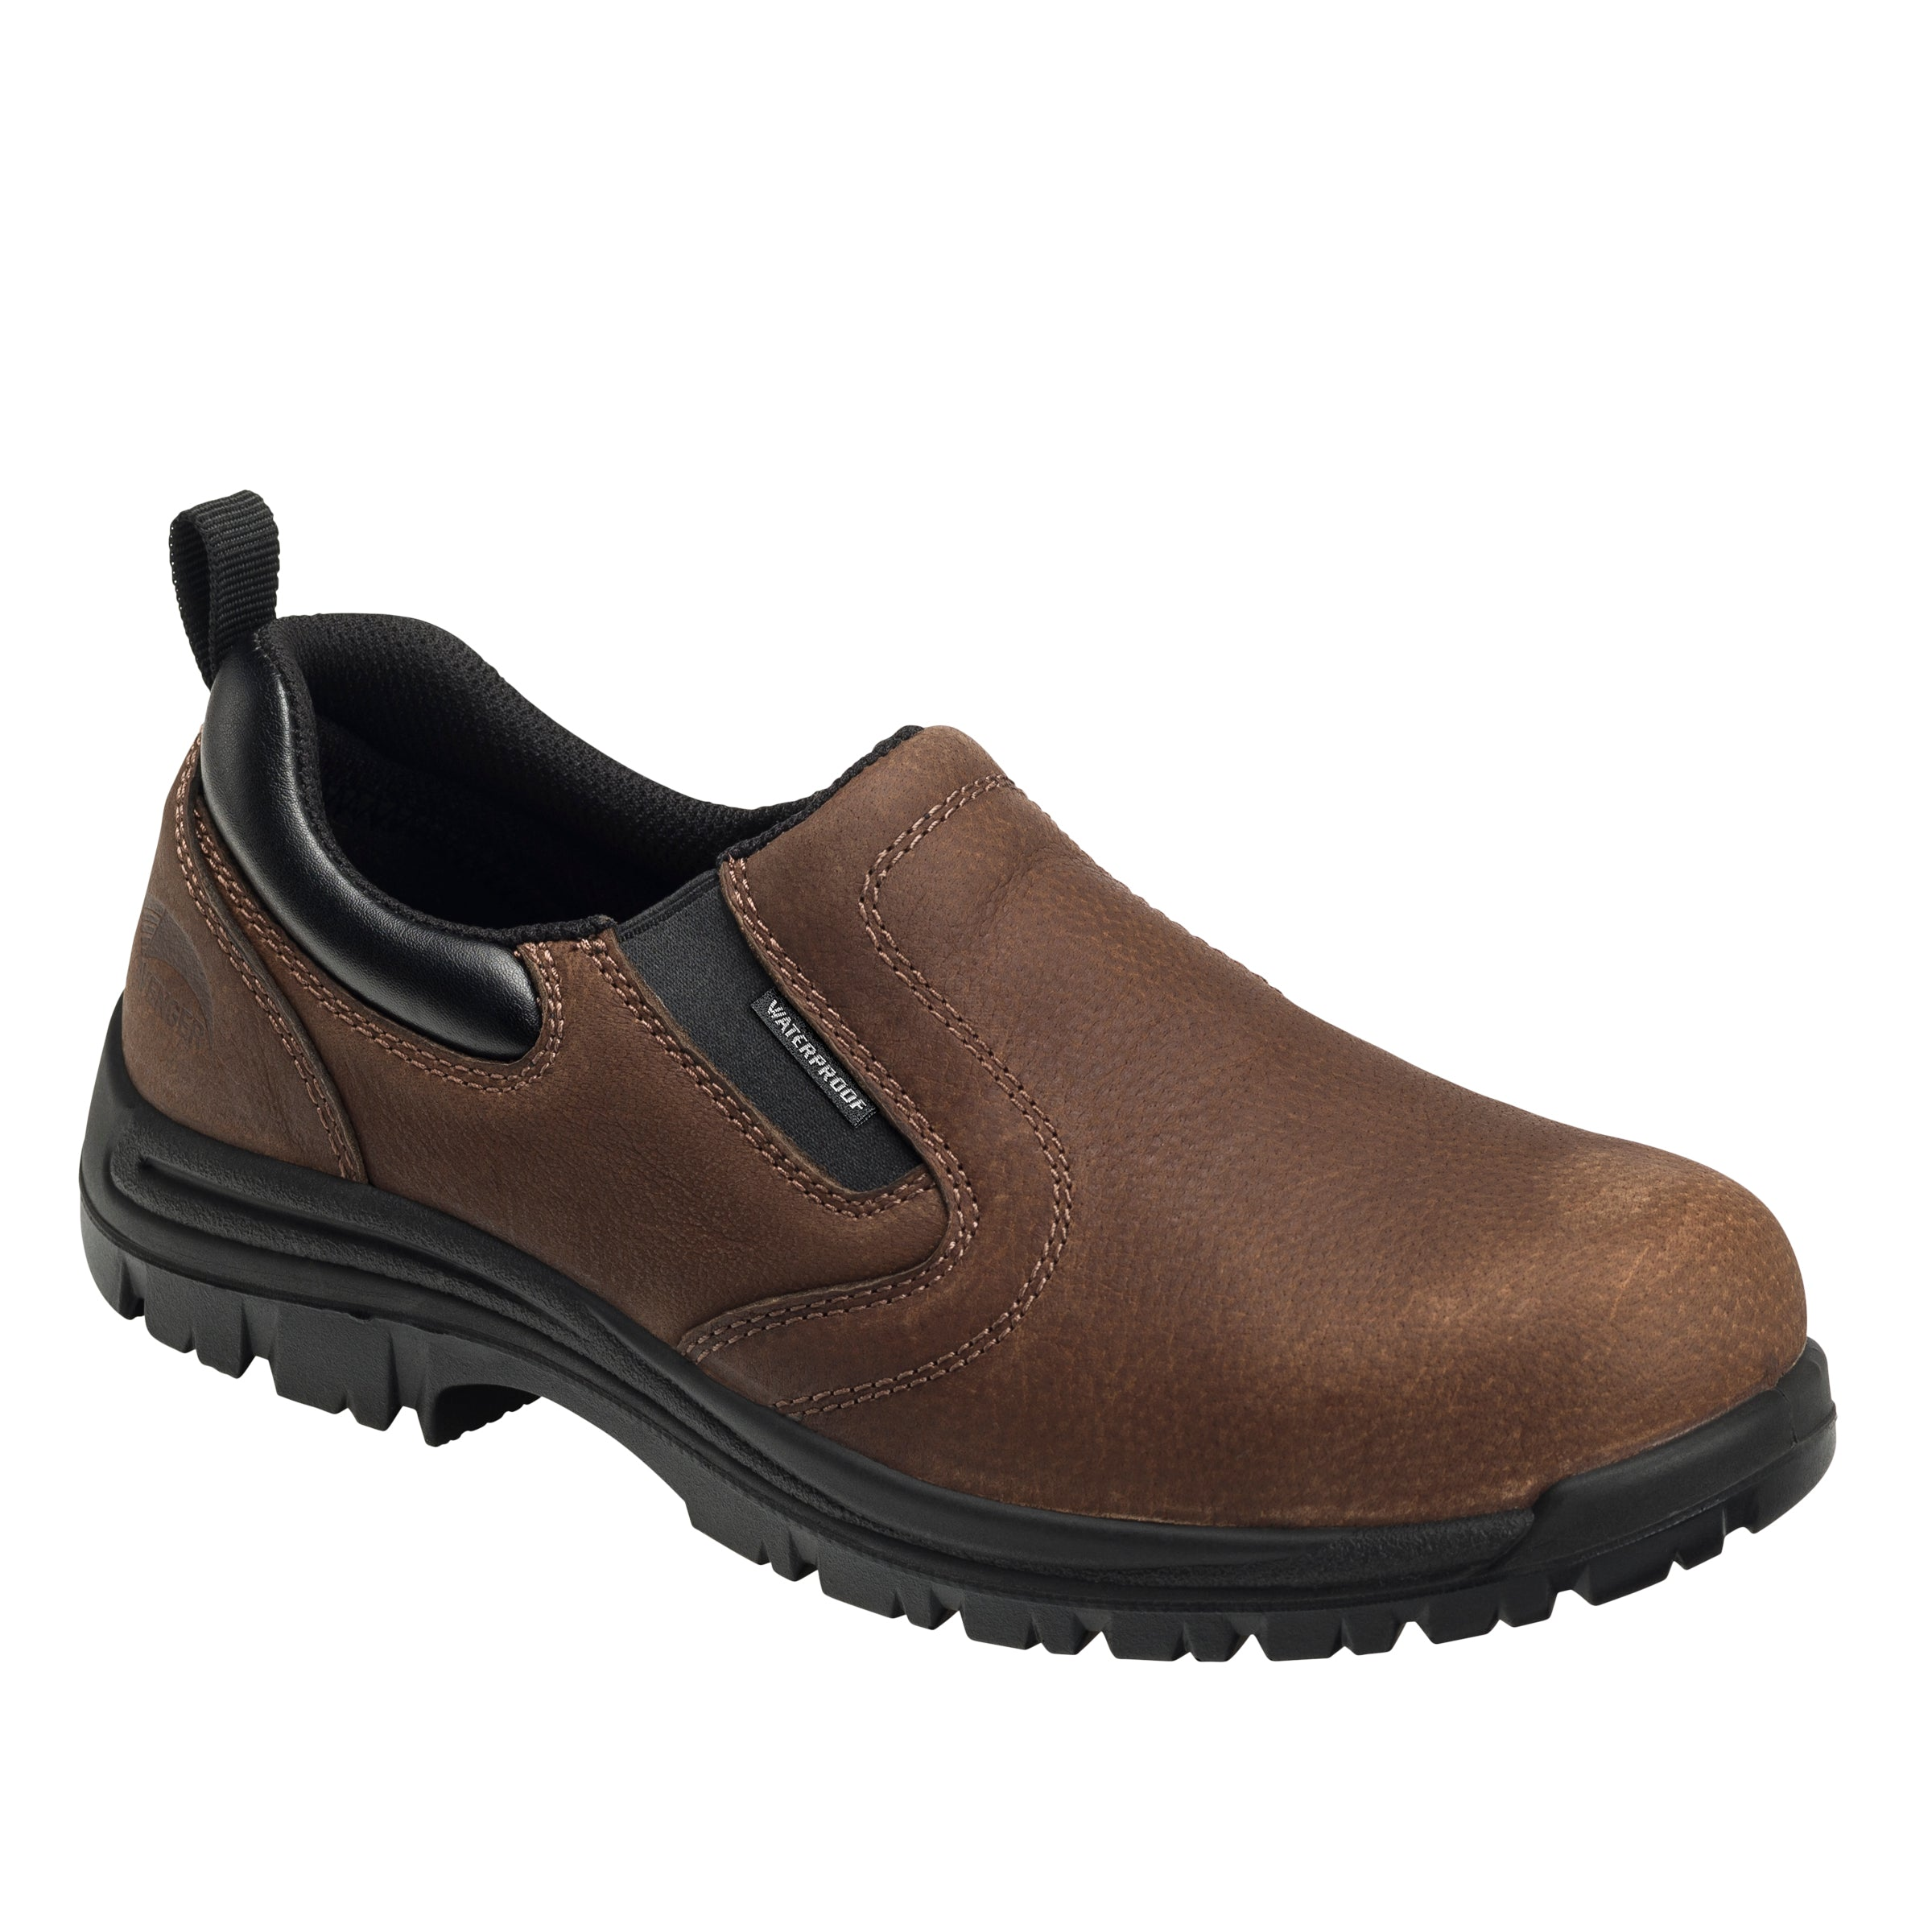 'Avenger' Men's WP EH Comp Toe Slip On - Brown